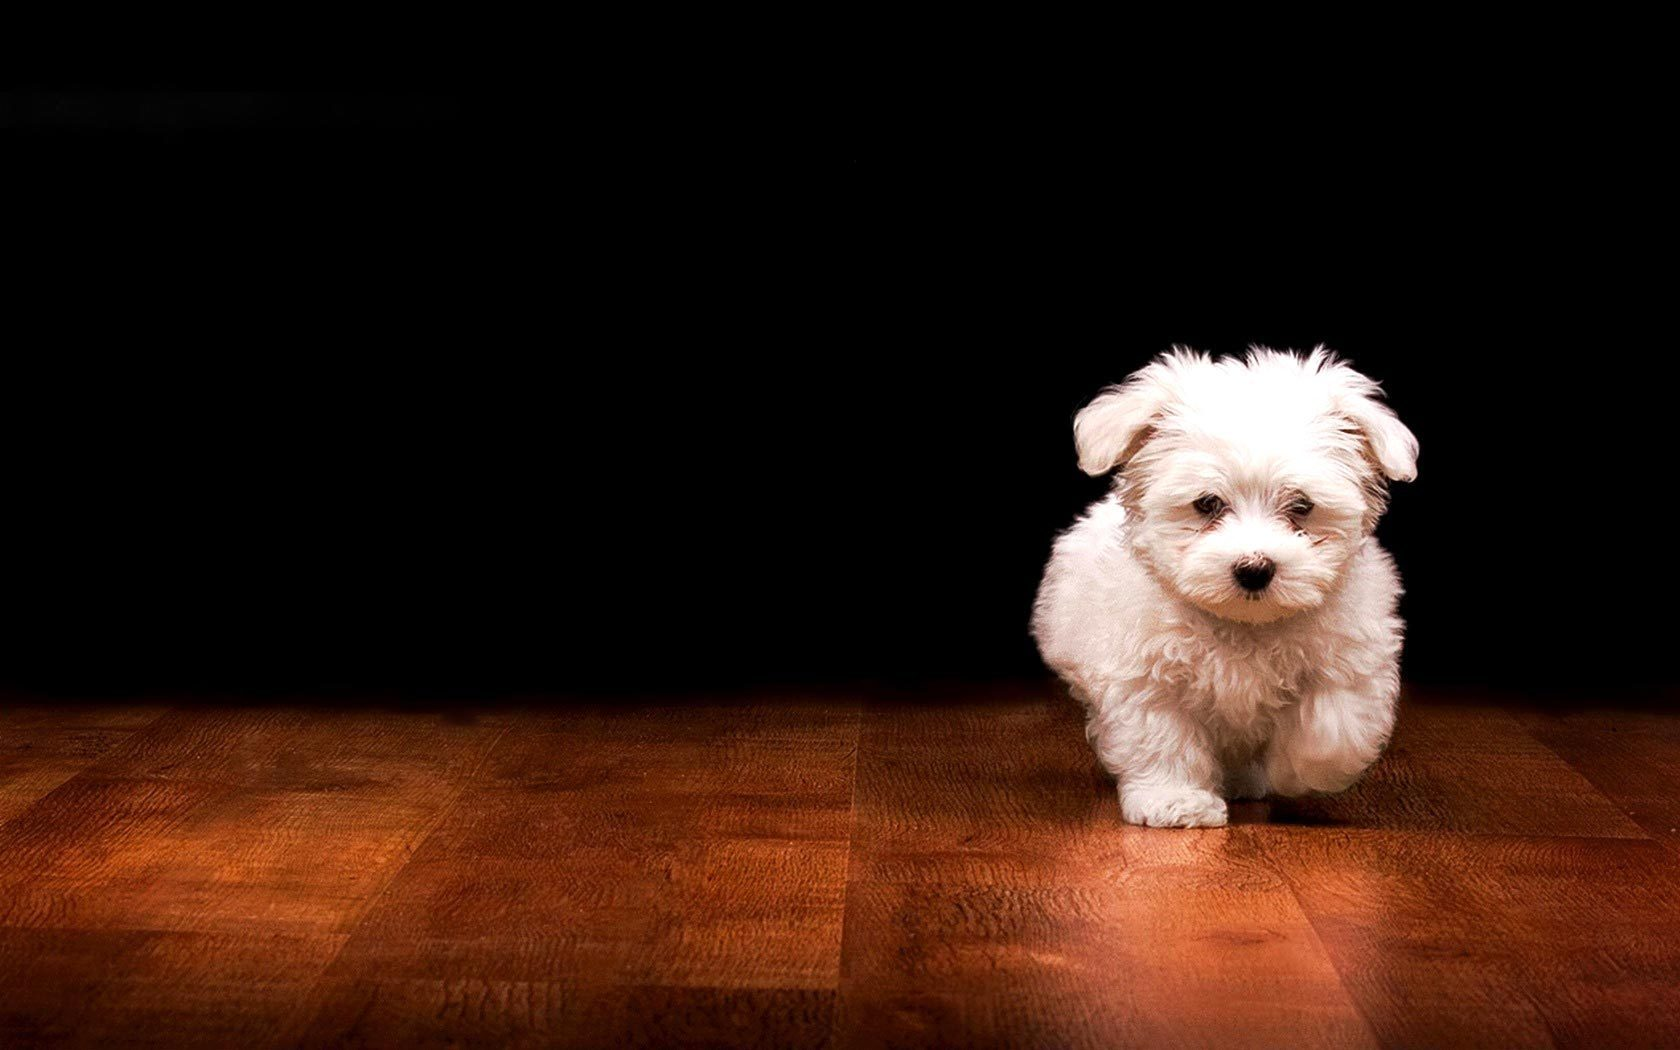 Puppy Dog Wallpaper